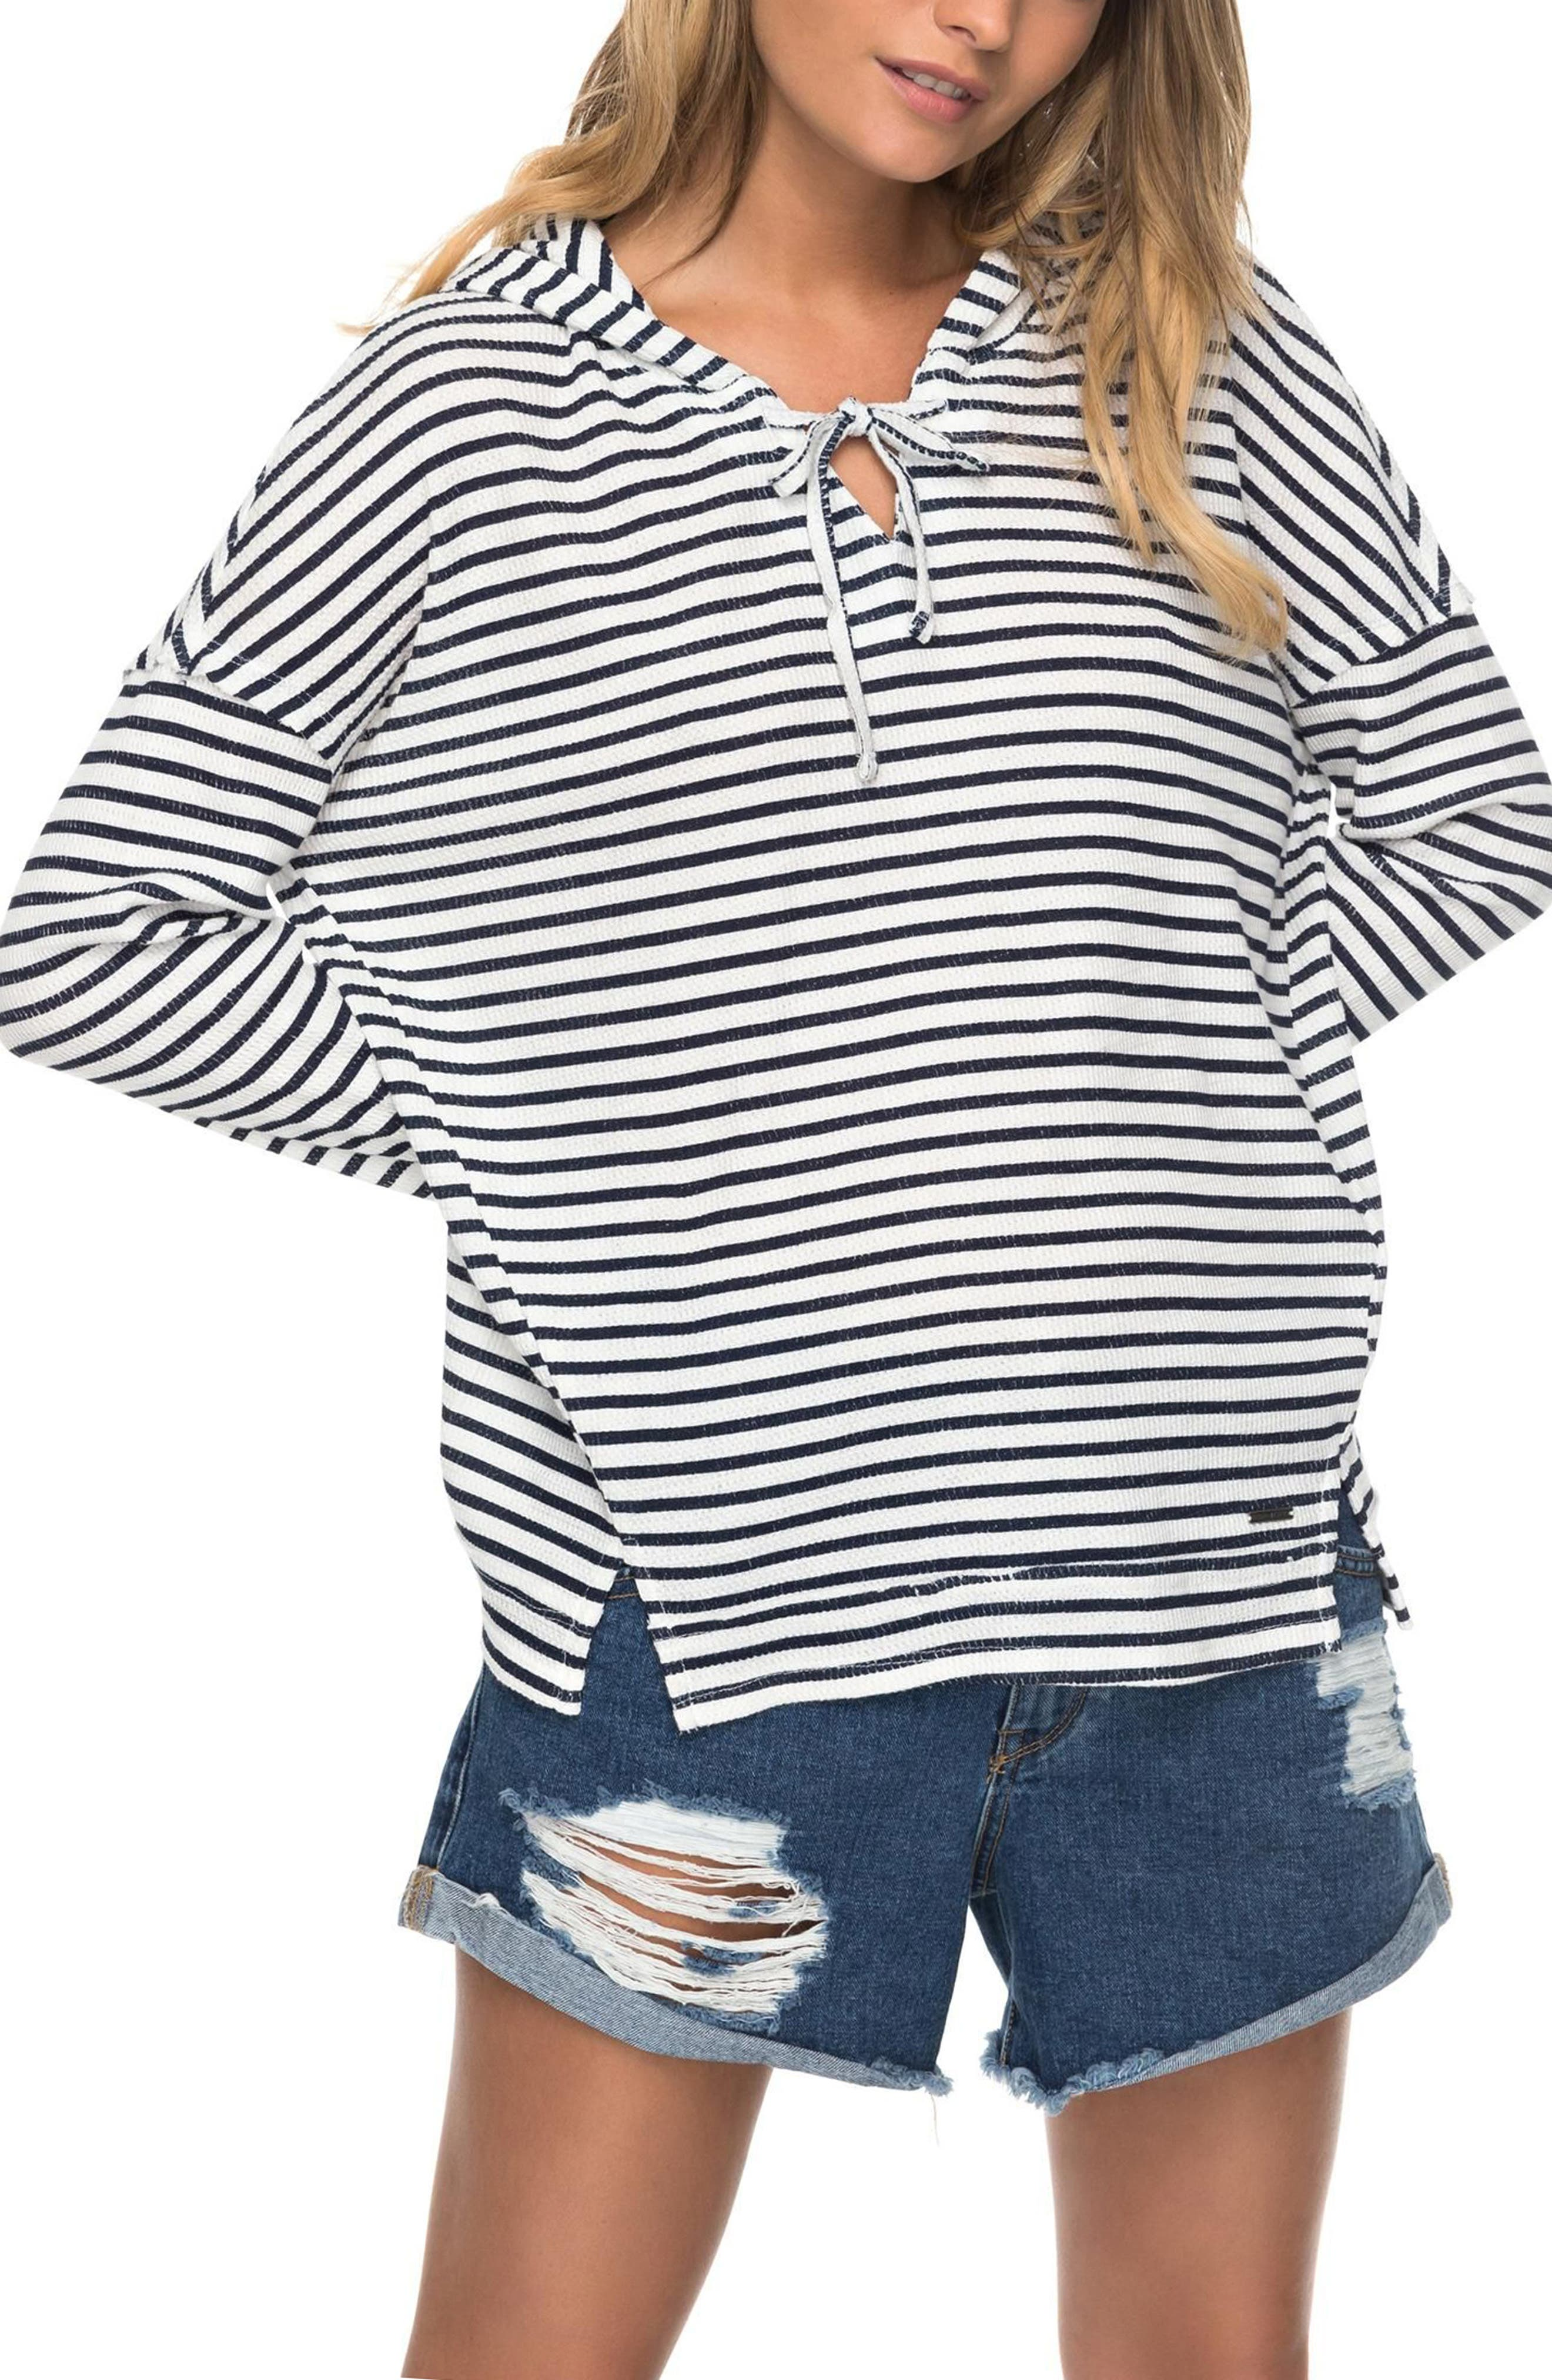 Wanted and Wild Thermal Hooded Top,                         Main,                         color, 101